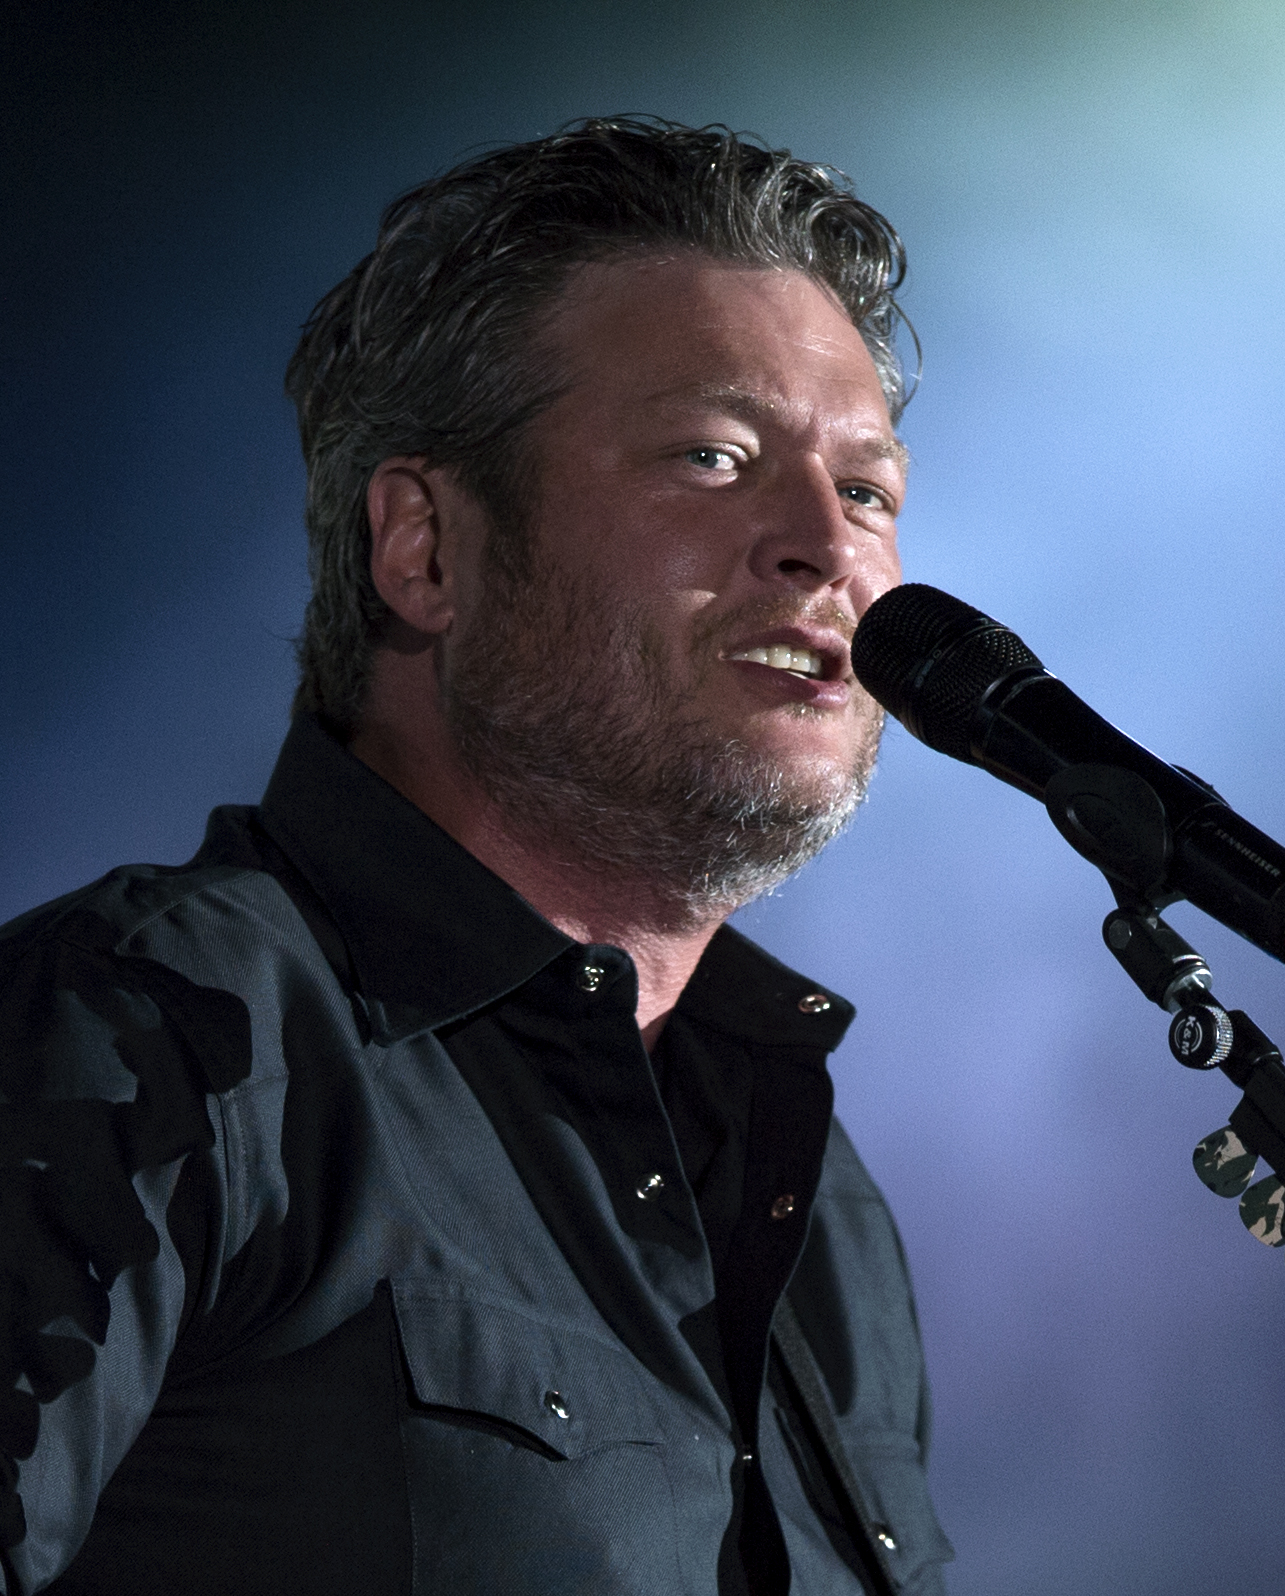 The 42-year old son of father Richard Shelton and mother Dorothy Shelton Blake Shelton in 2018 photo. Blake Shelton earned a  million dollar salary - leaving the net worth at 50 million in 2018